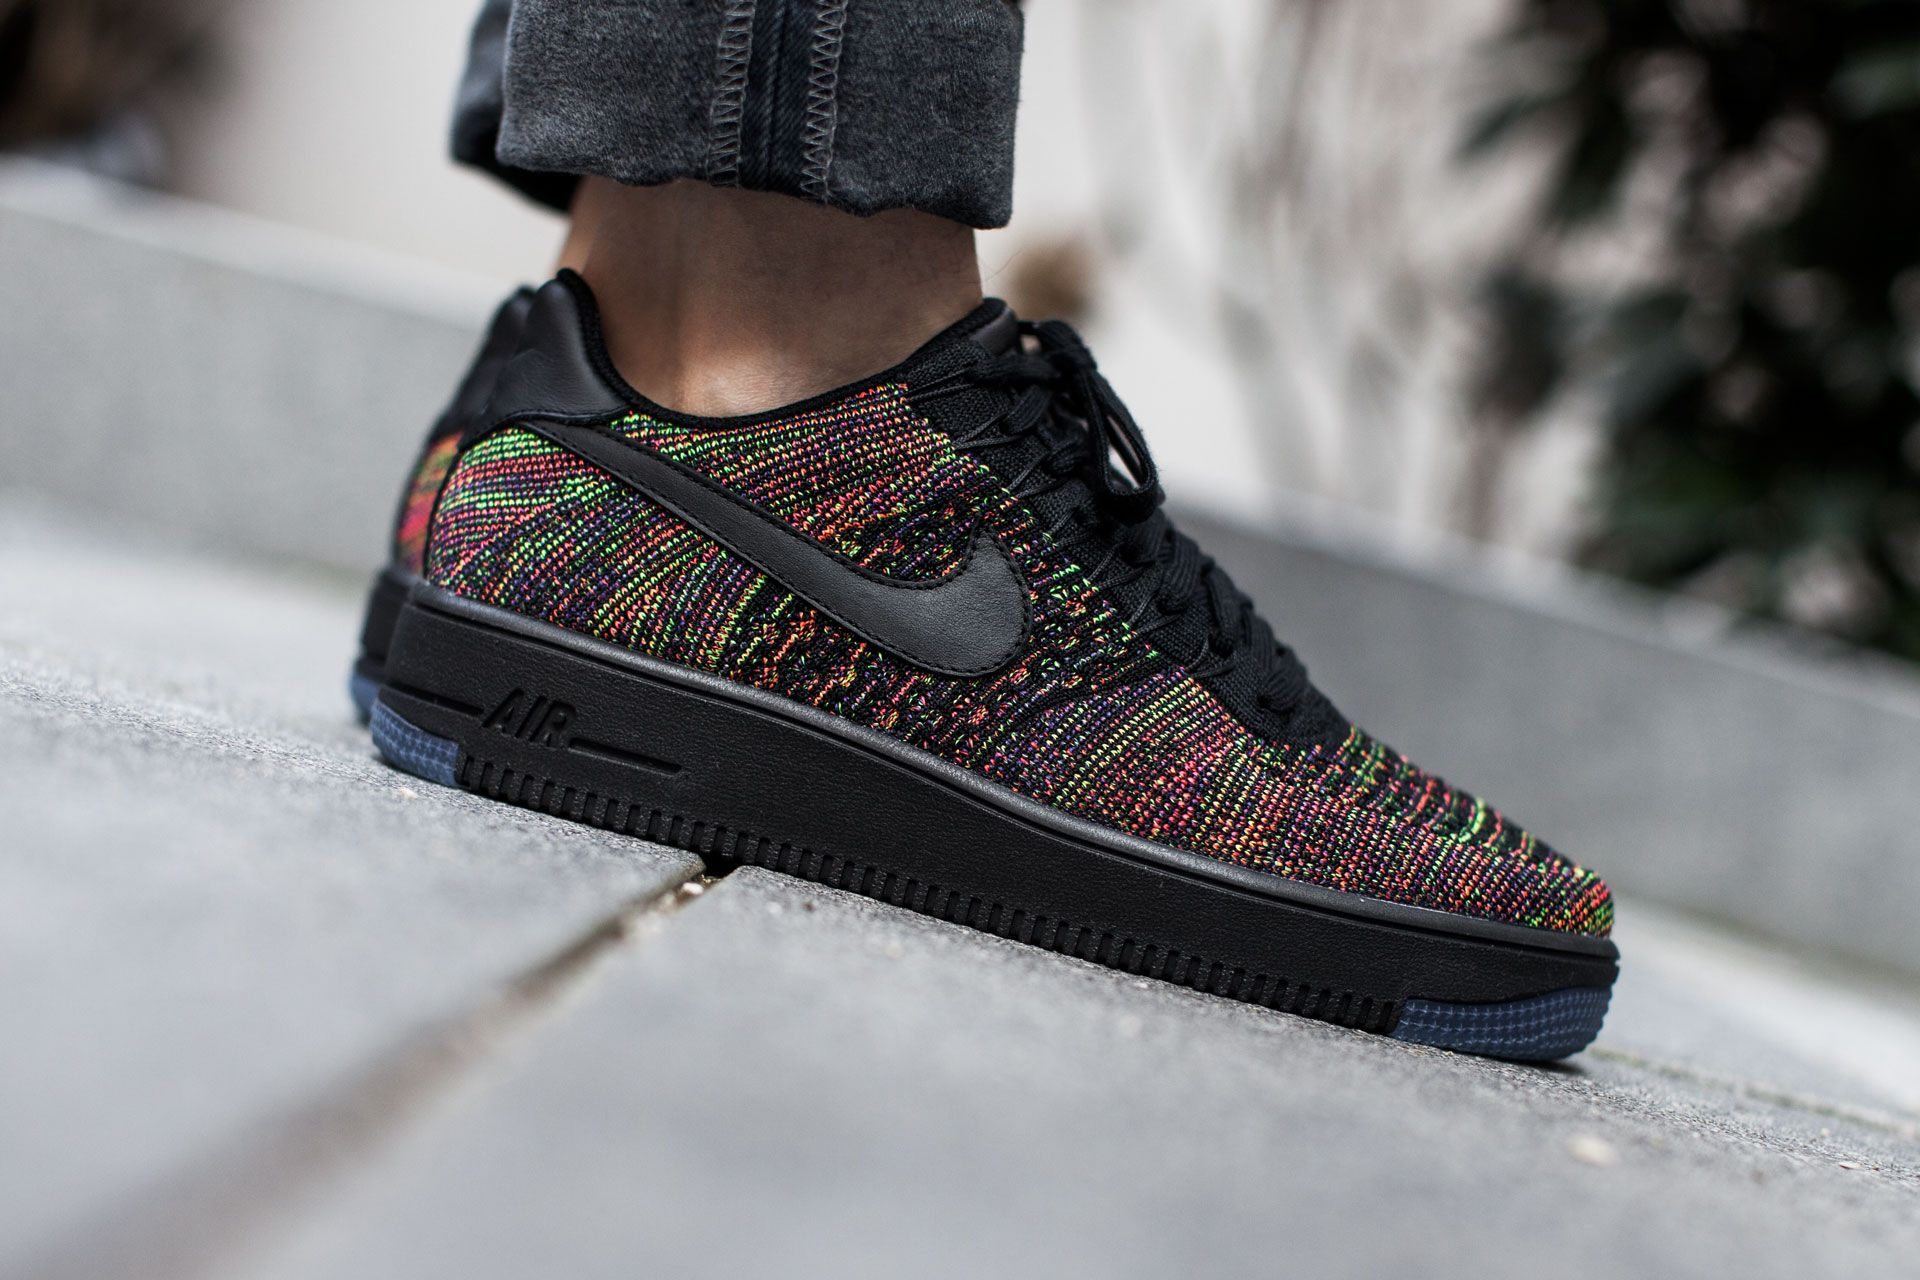 Nike Air Force 1 Flyknit Low 'Multicolor' available at: www.tint-footwear.com/air-force-1-flyknit-low-001 #Nike #AirForce #1 # Flyknit #Multicolor #dark #low #tintfootwearstudio